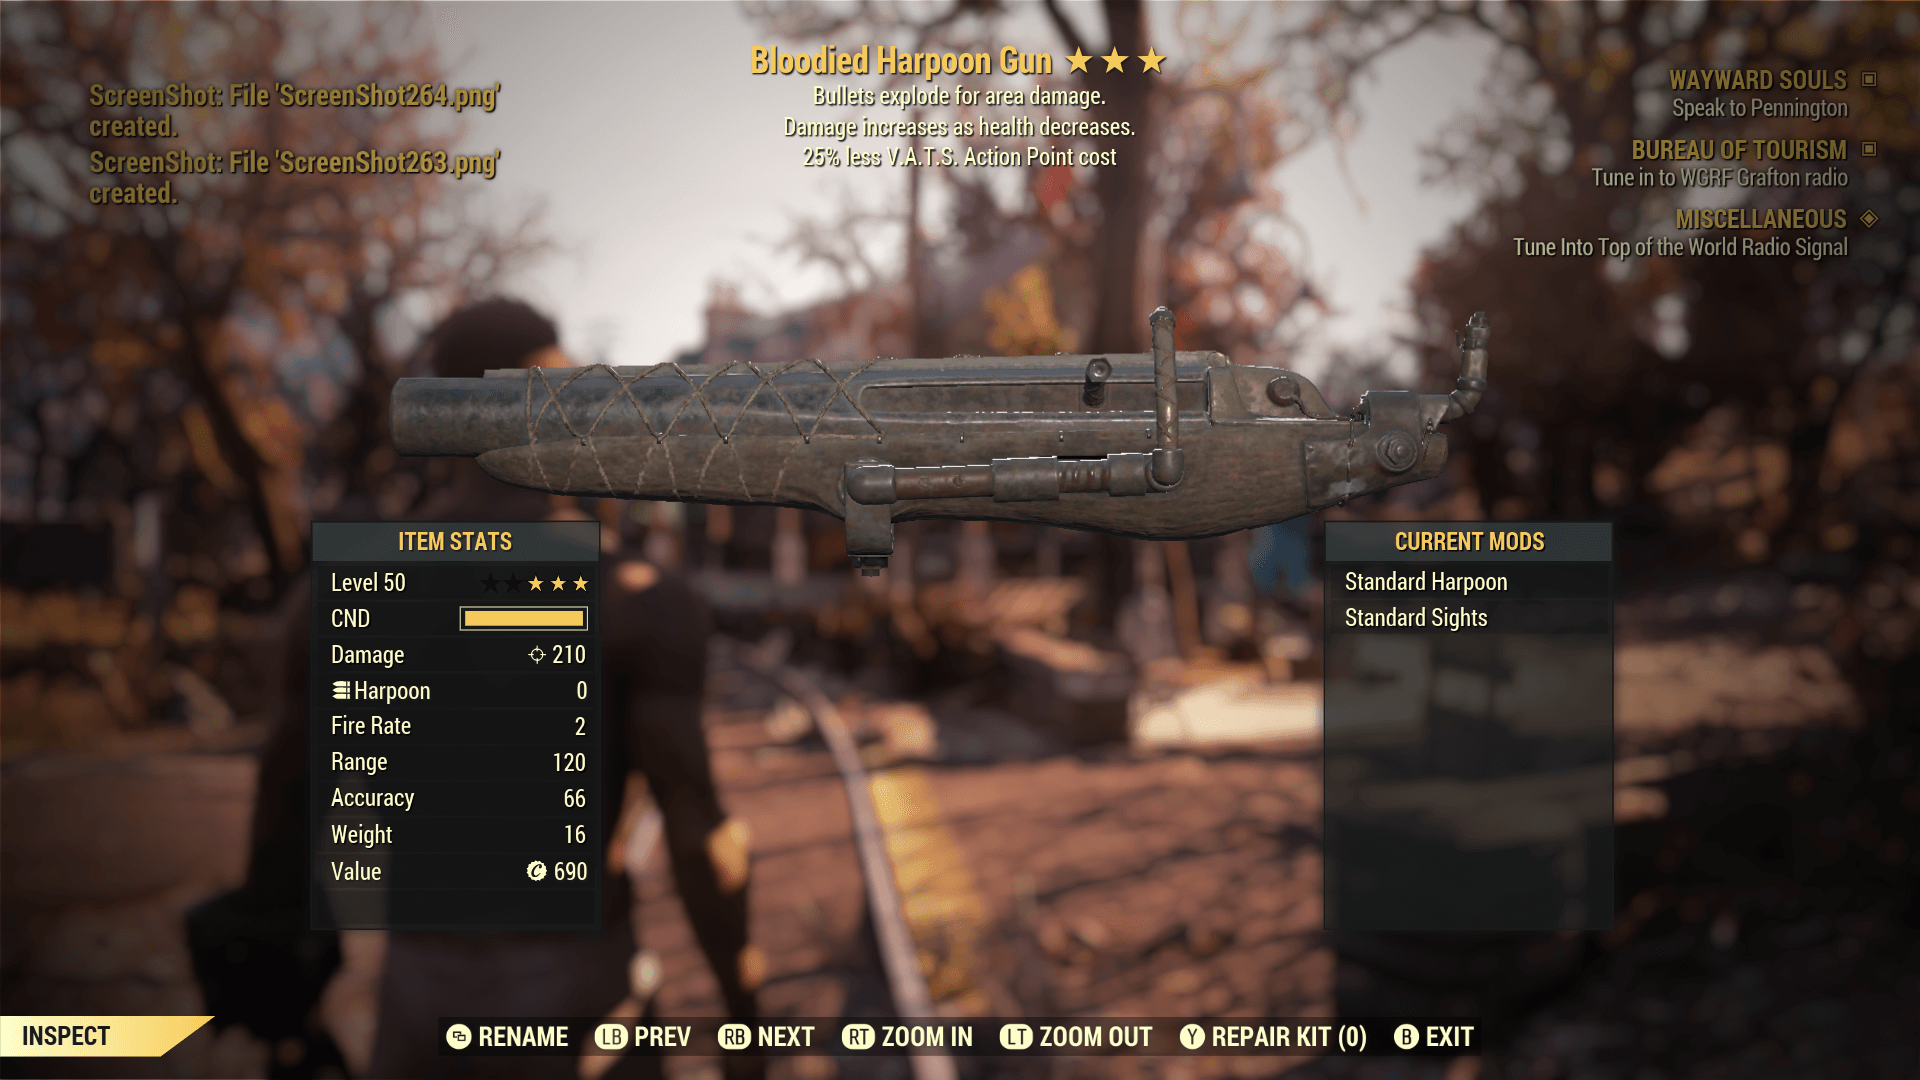 Bloodied Harpoon Gun[25% less V.A.T.S.Action Point cost]